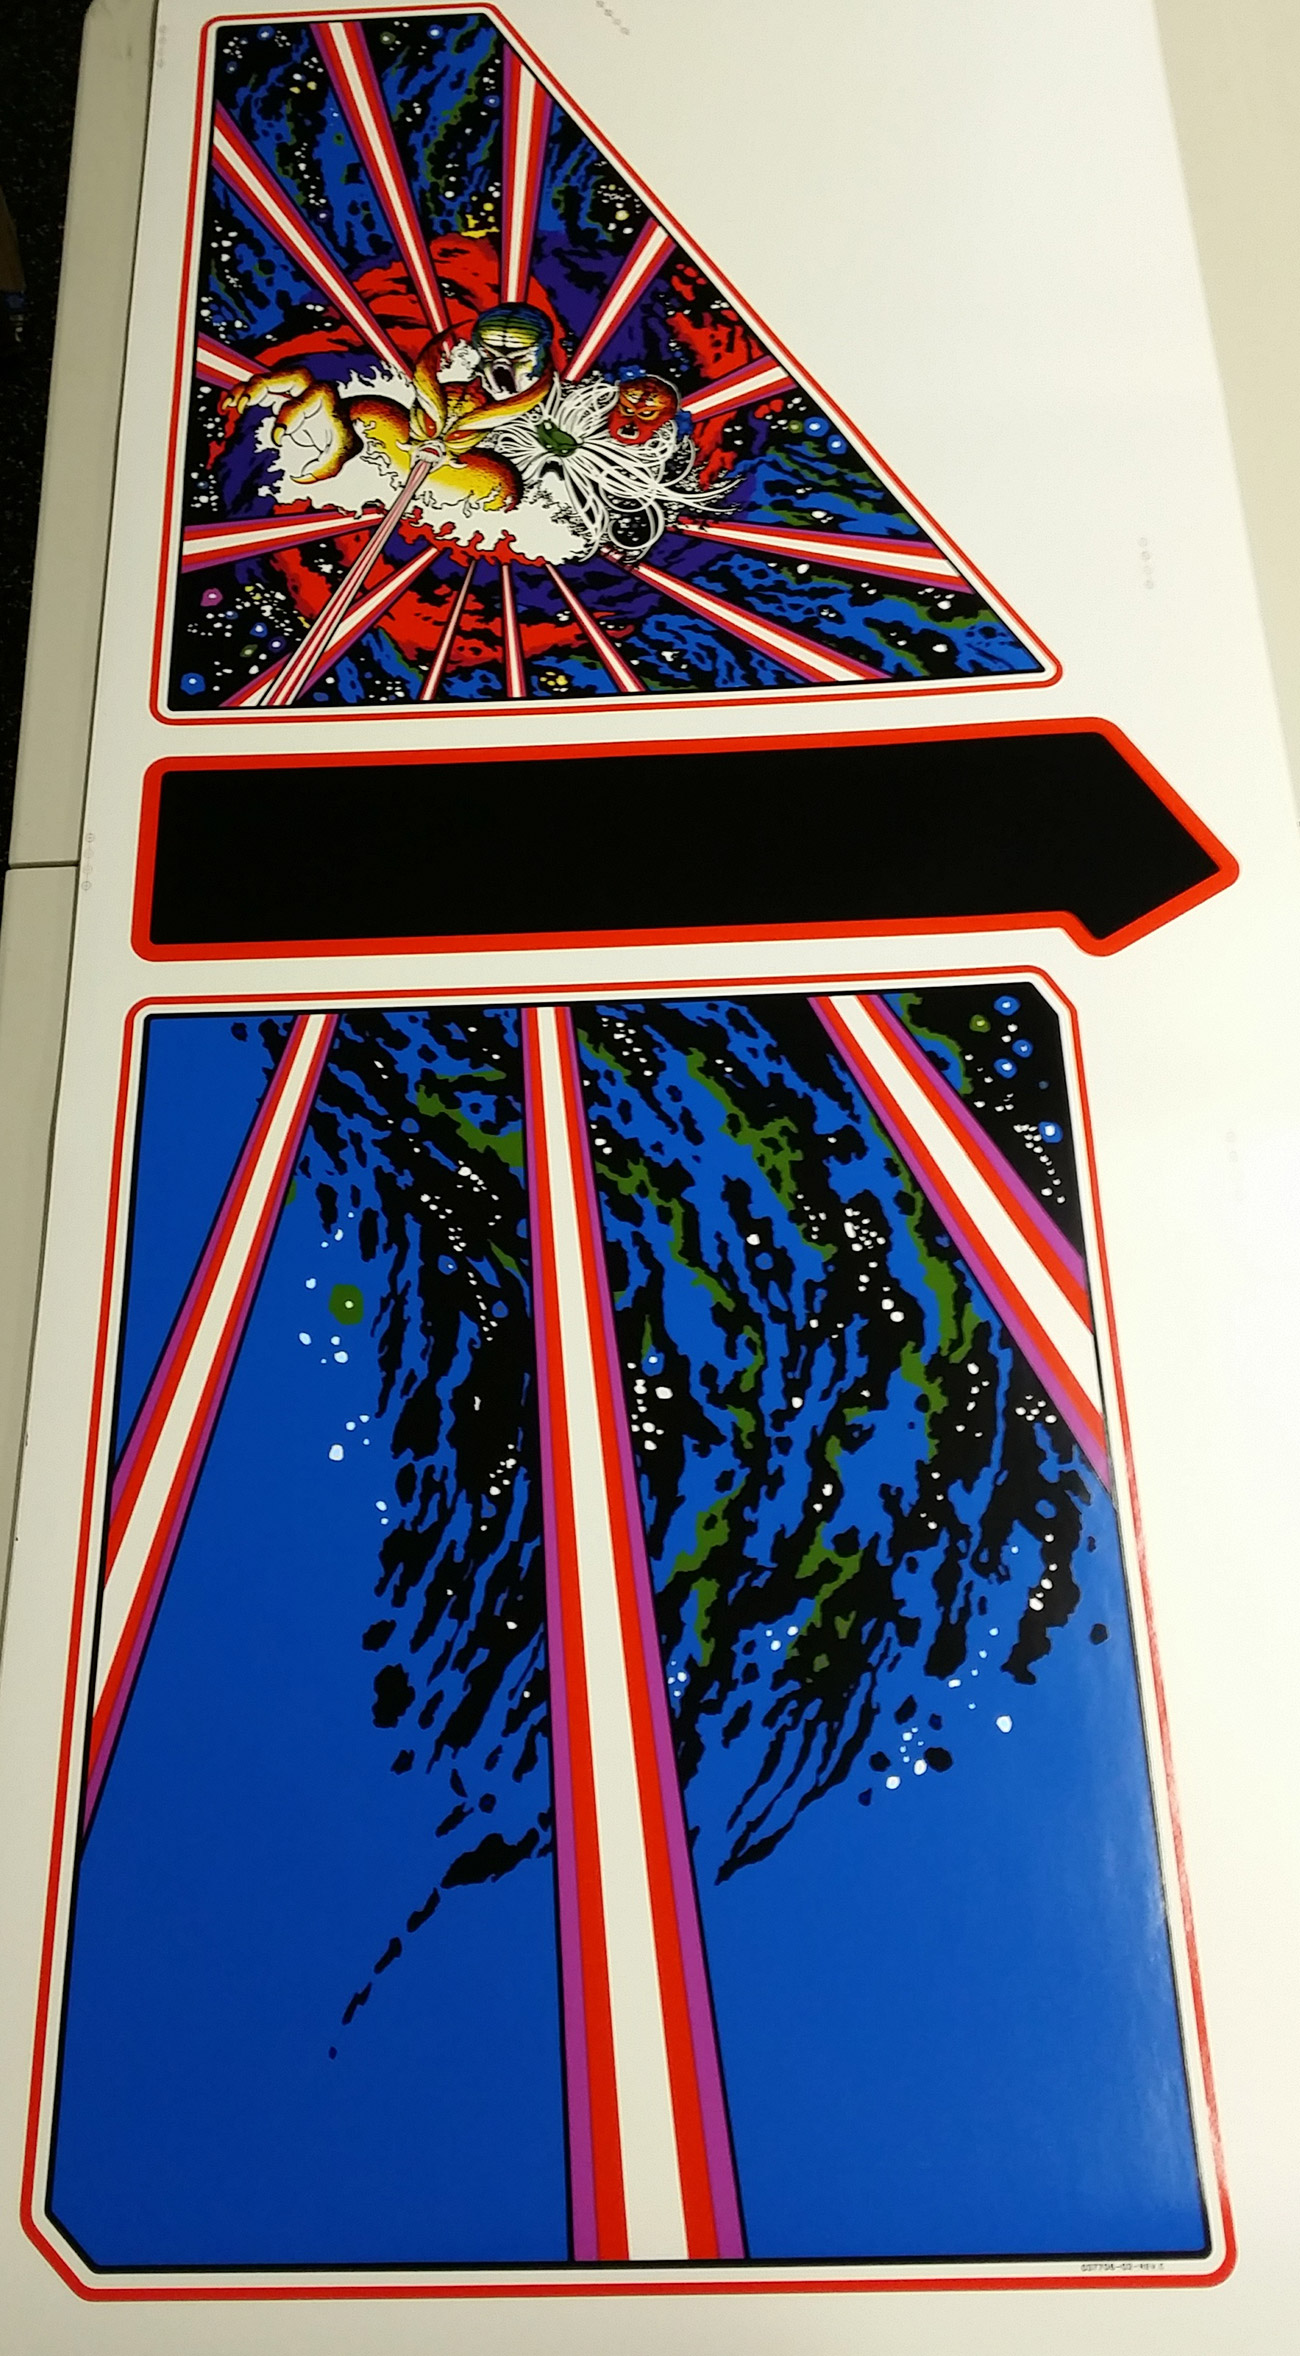 Tempest Upright Side Art Phoenix Arcade 1 Source For